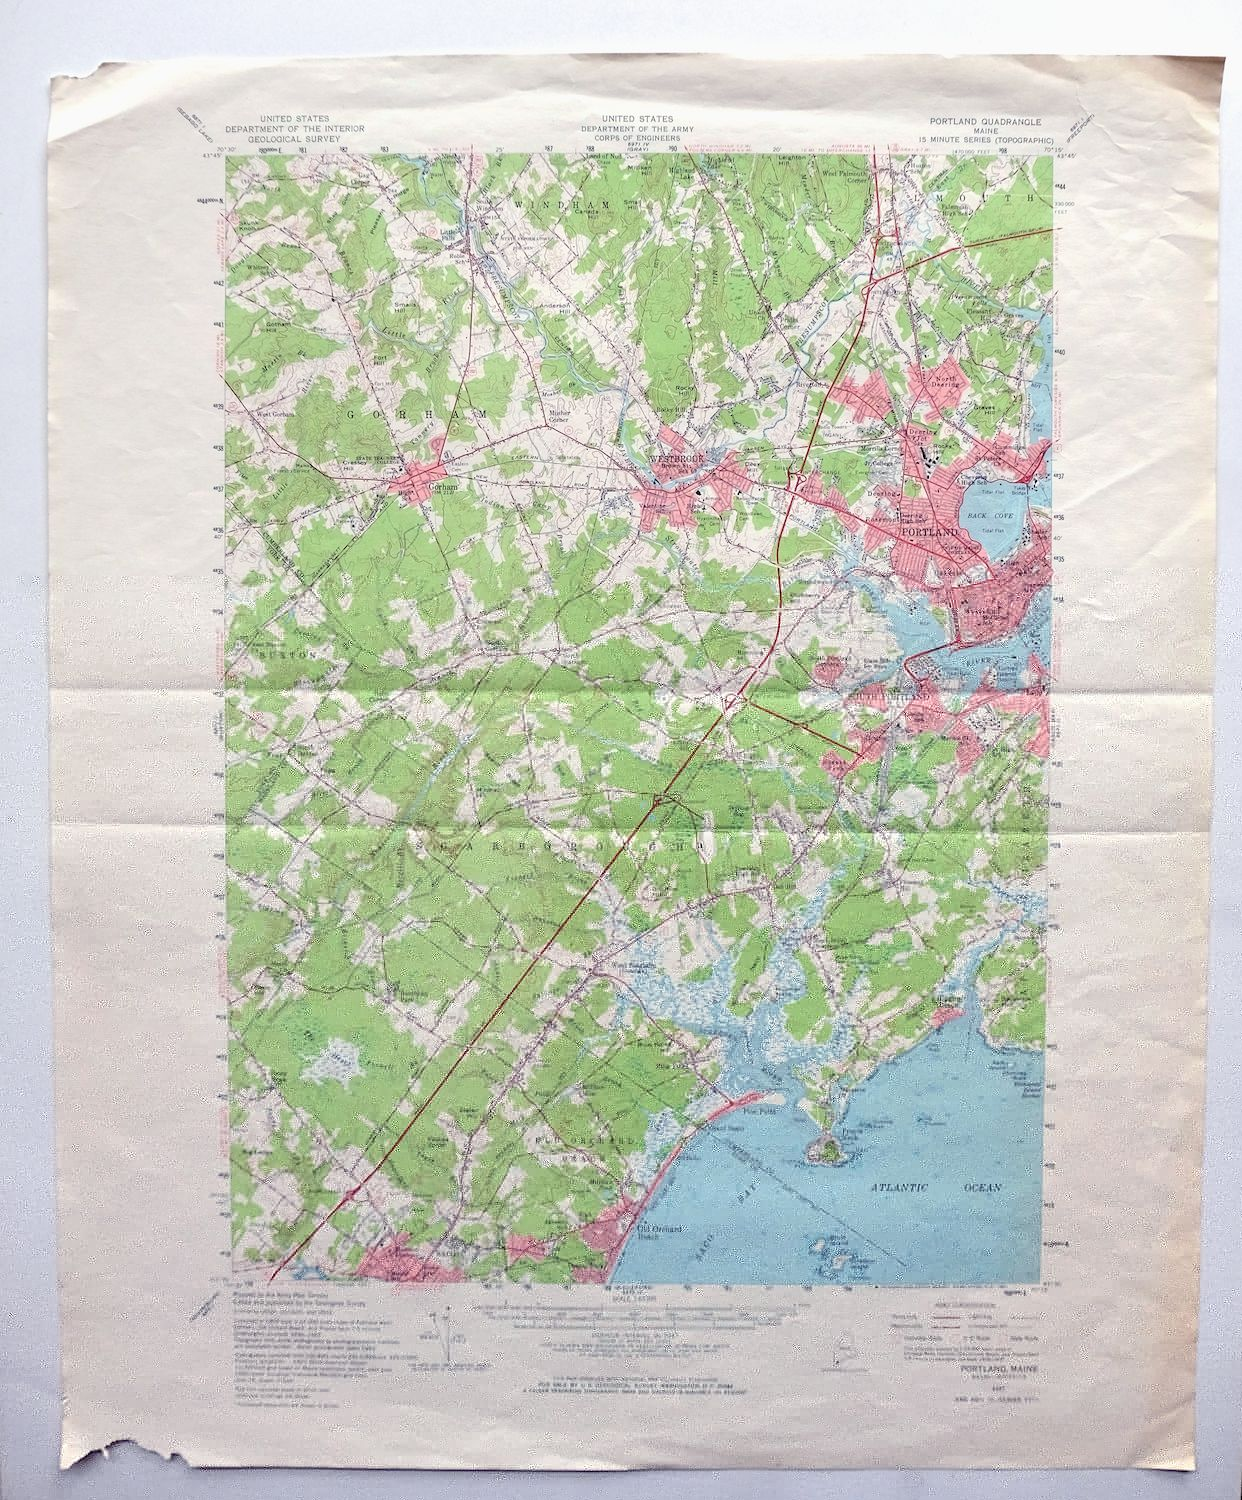 Details about Portland Maine Vintage USGS Army Corp of Engineers Topo Map  1957 Biddeford Saco